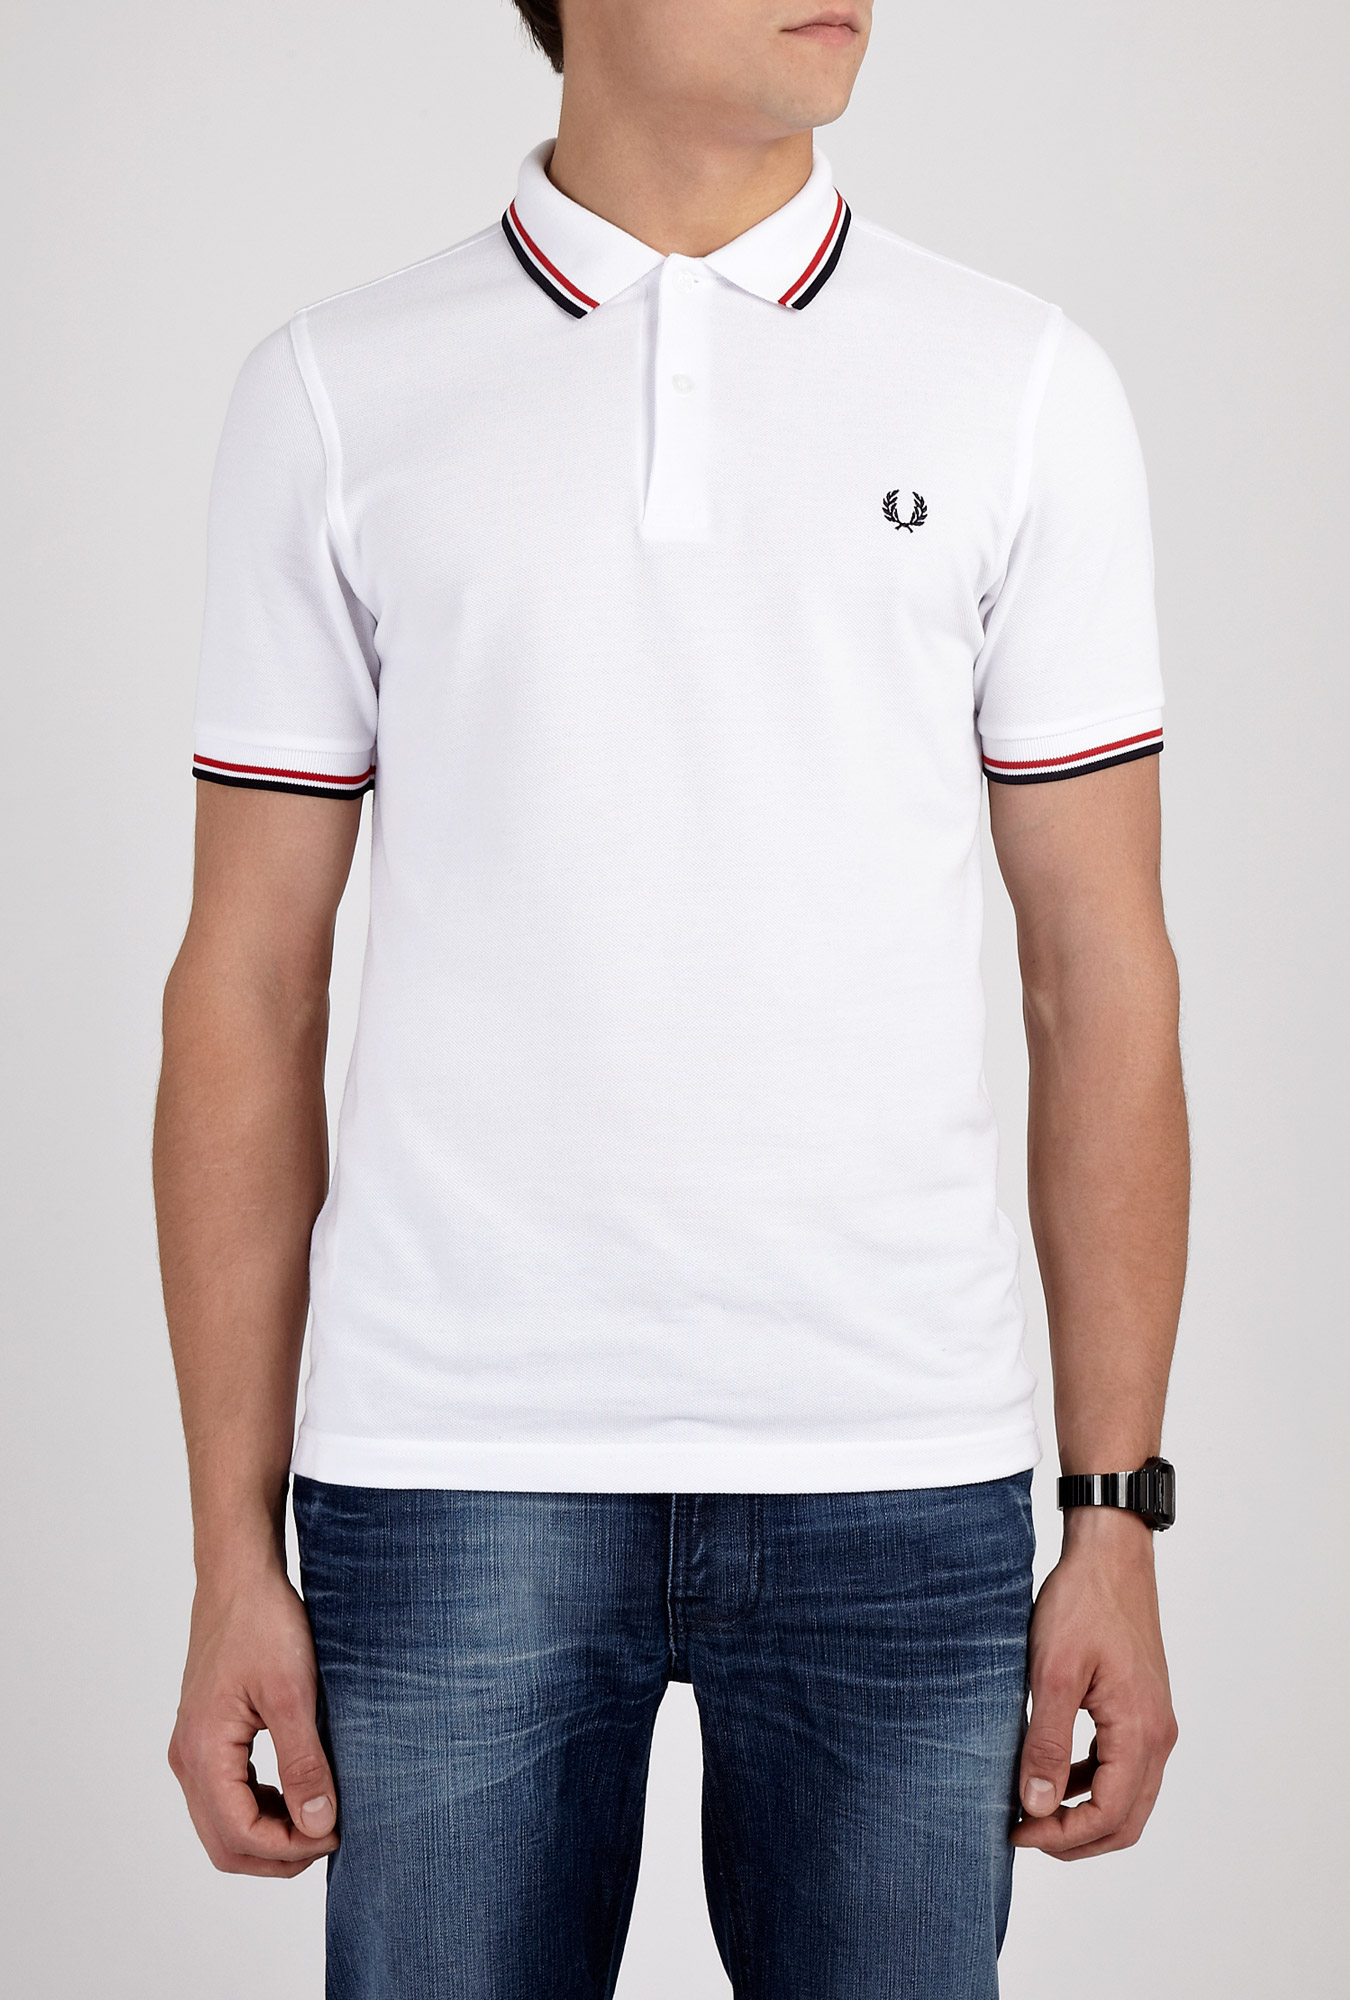 fred perry white twin tipped polo in white for men lyst. Black Bedroom Furniture Sets. Home Design Ideas